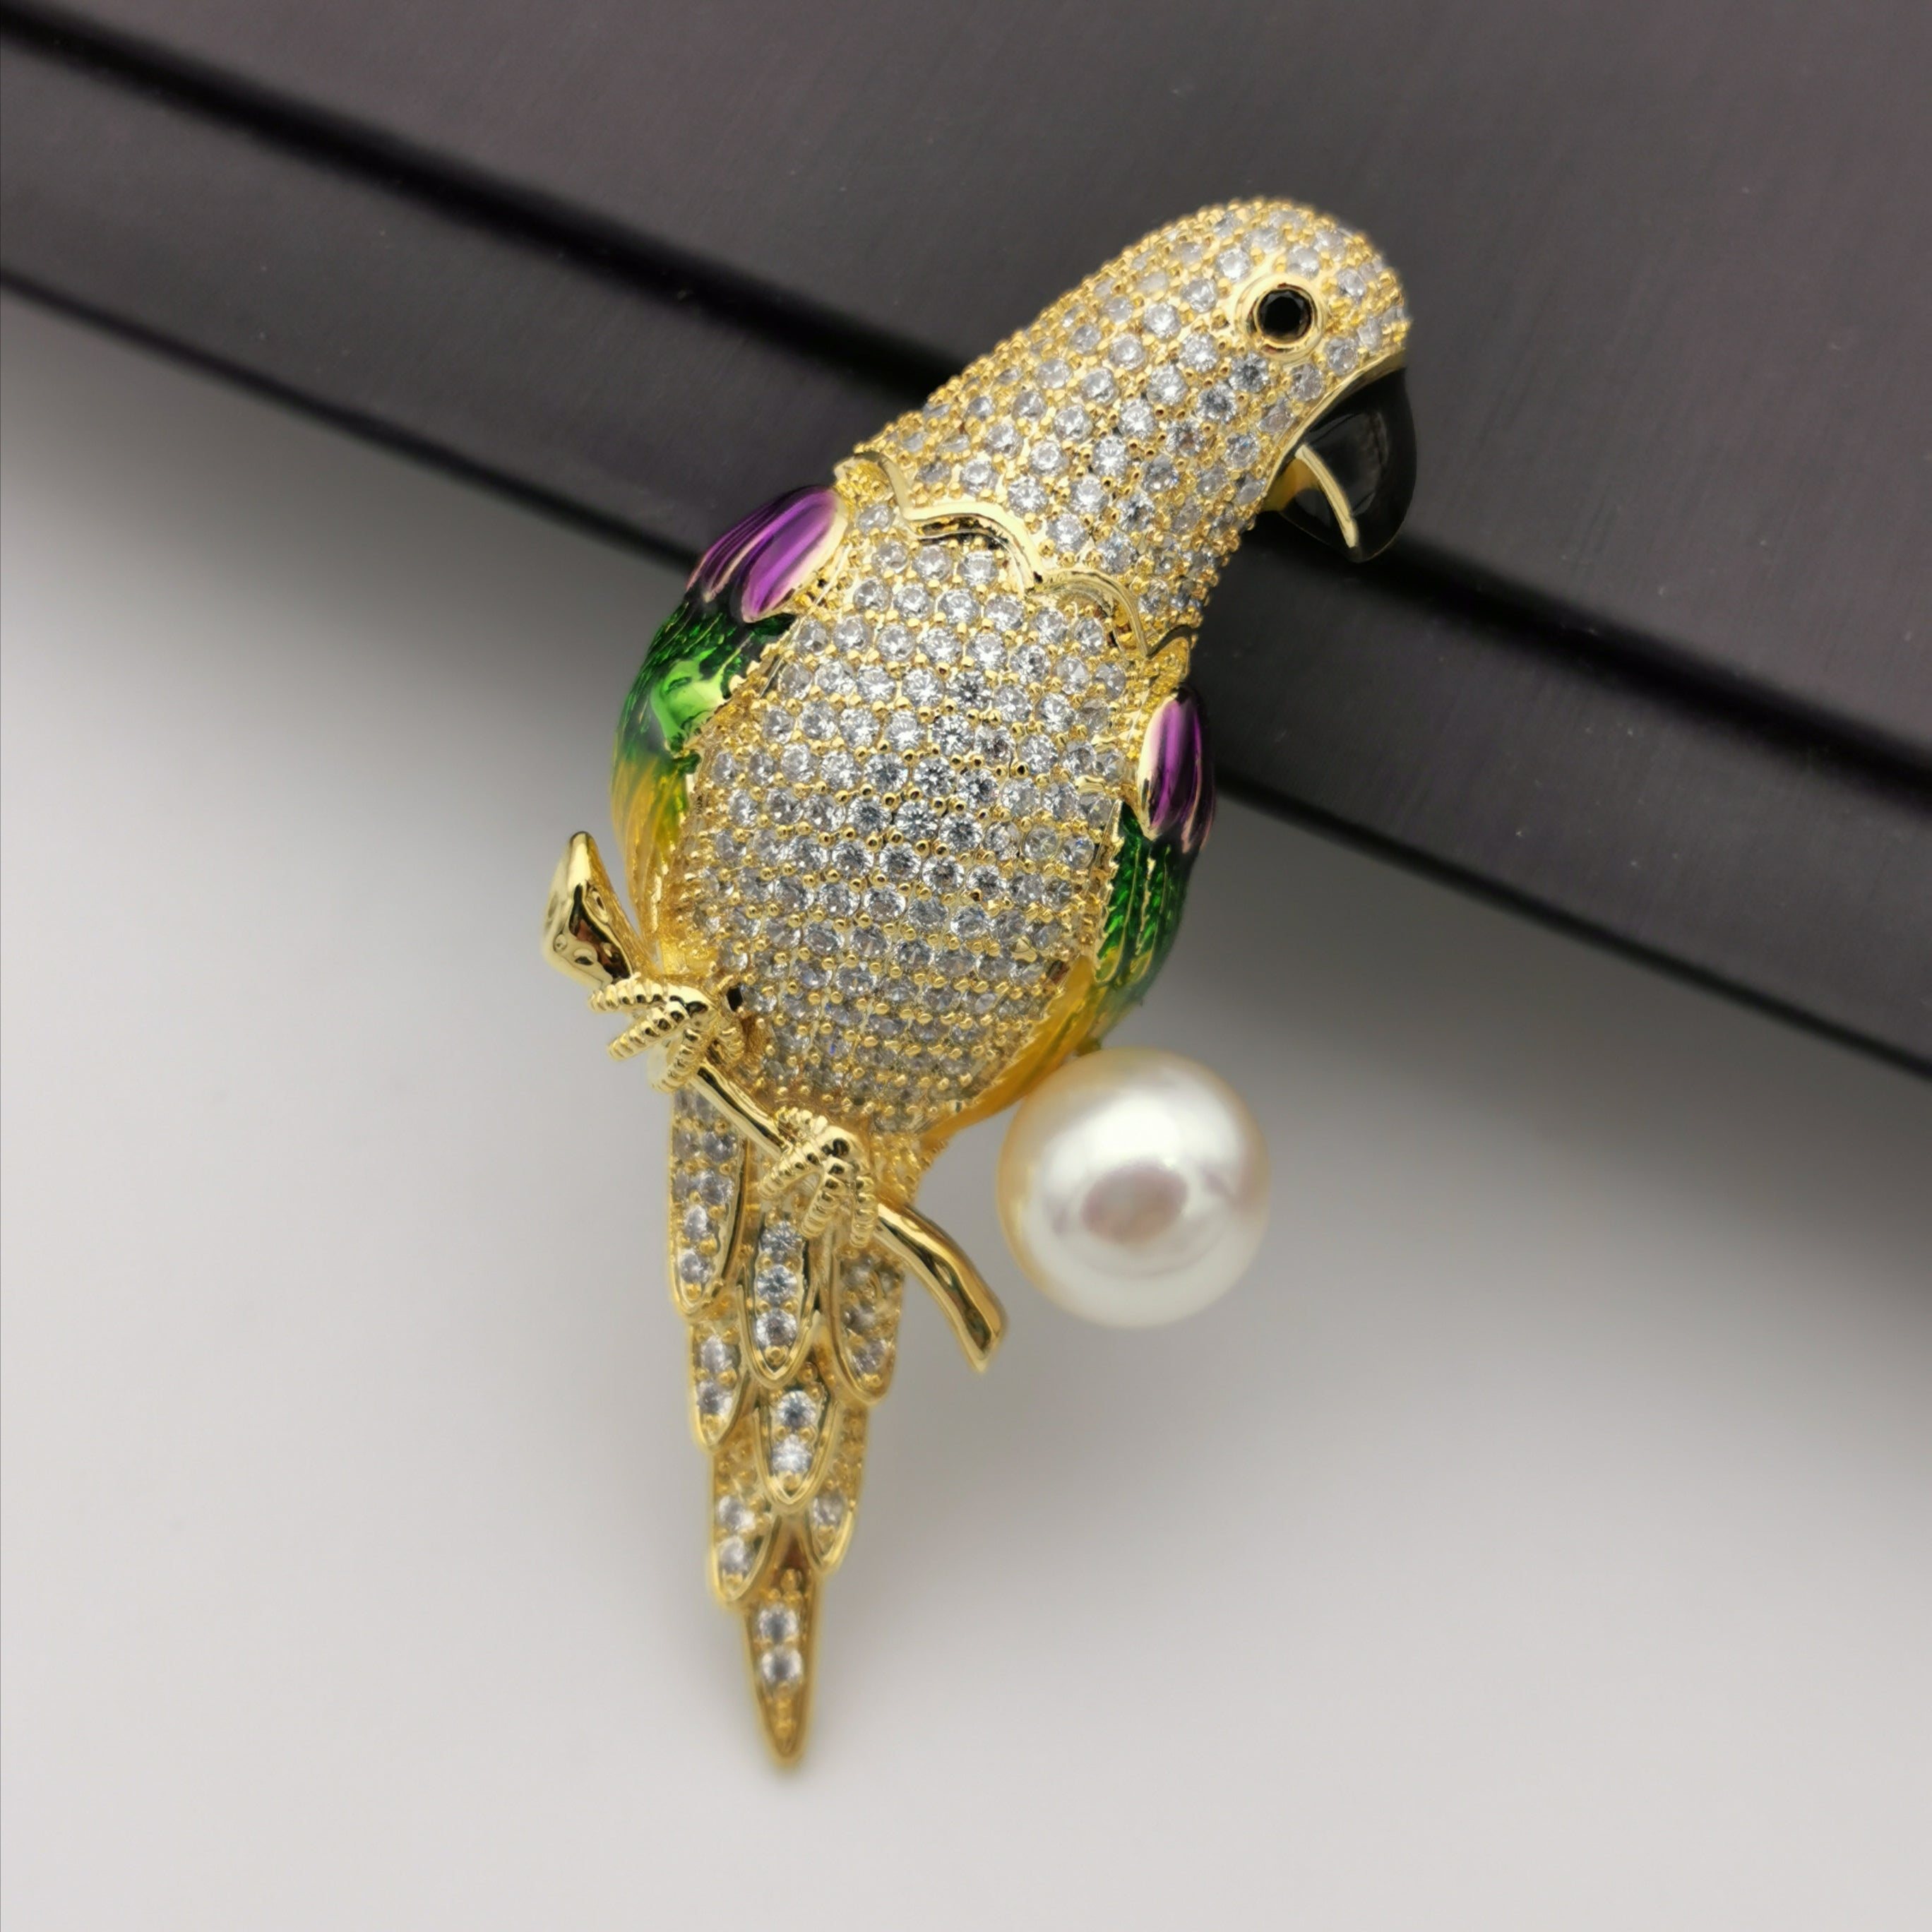 Parrot freshwater pearl brooch